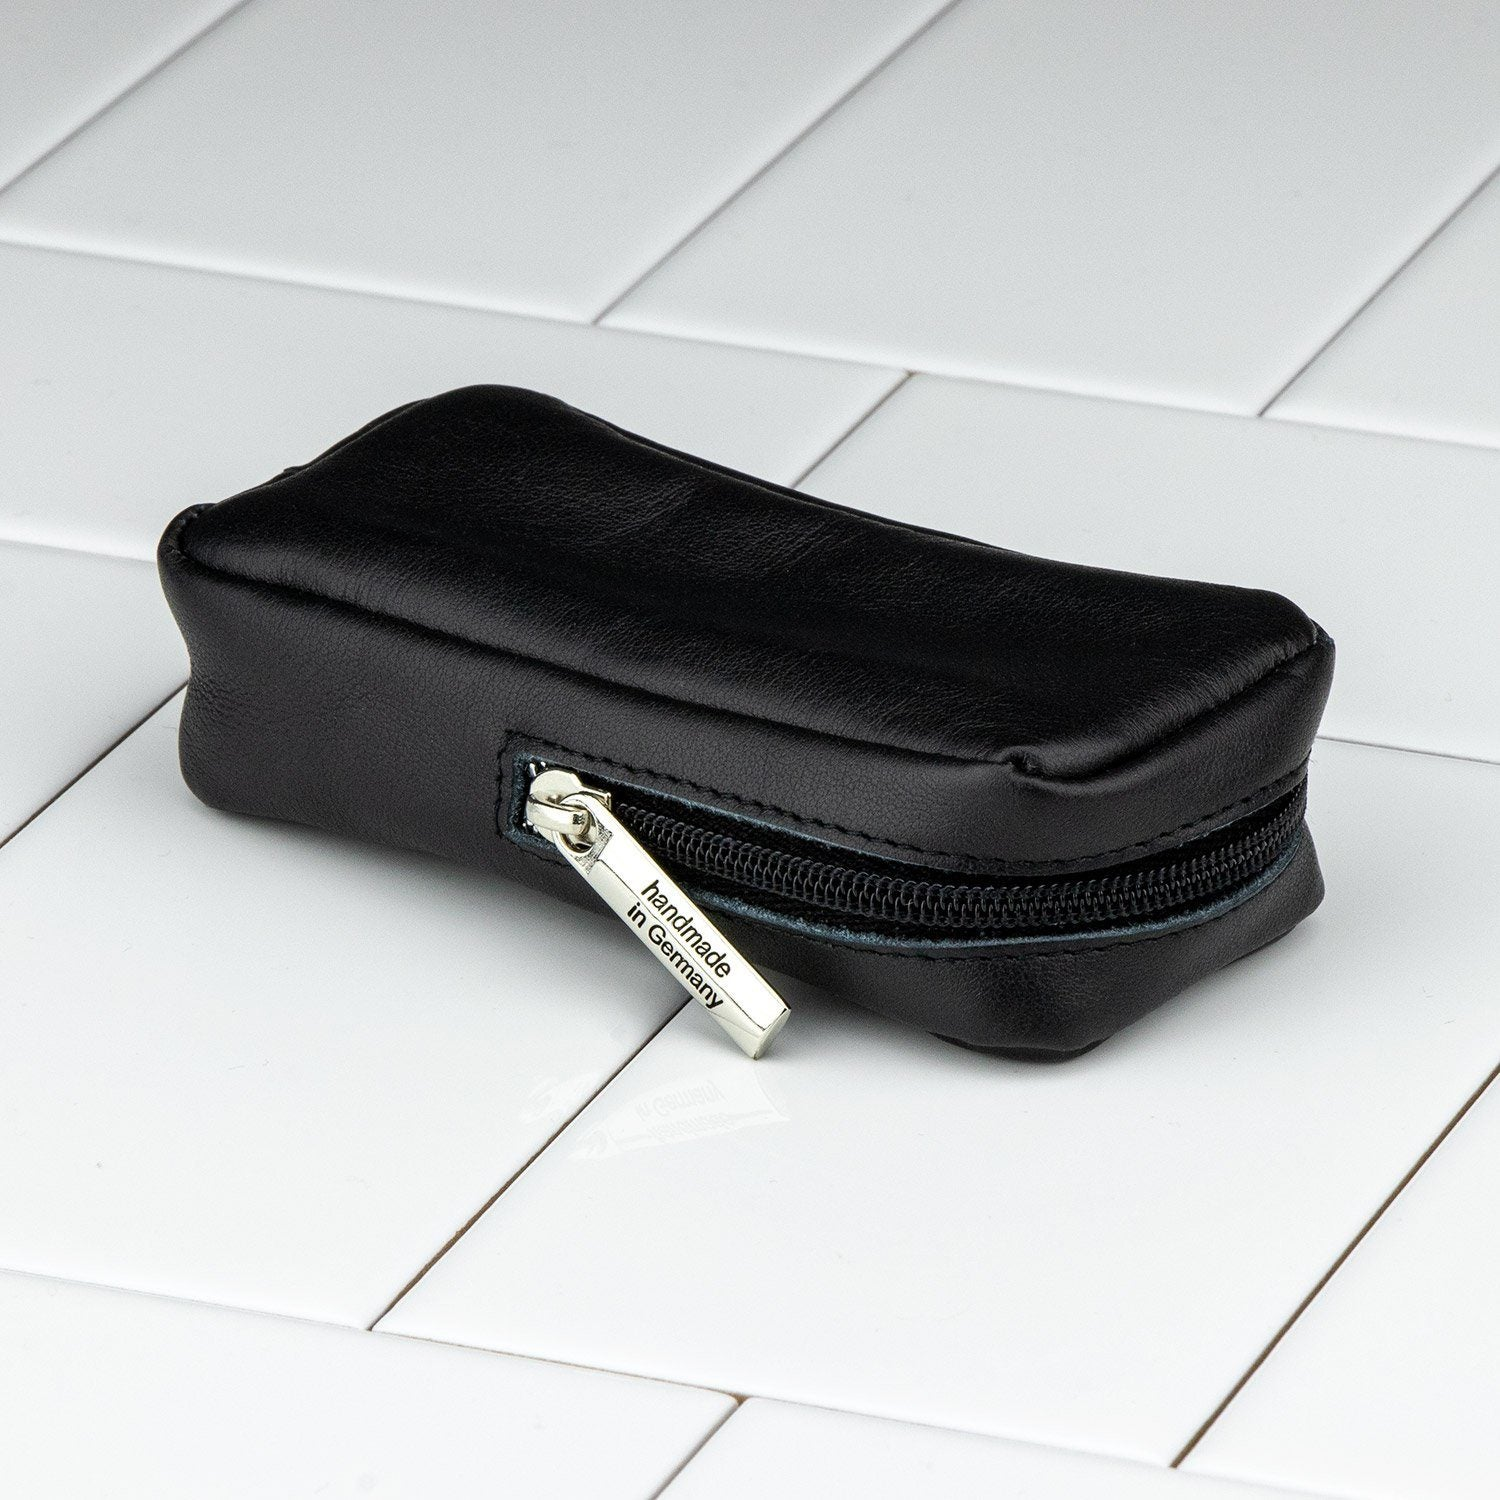 Dovo Zippered Leather Case For Safety Razors